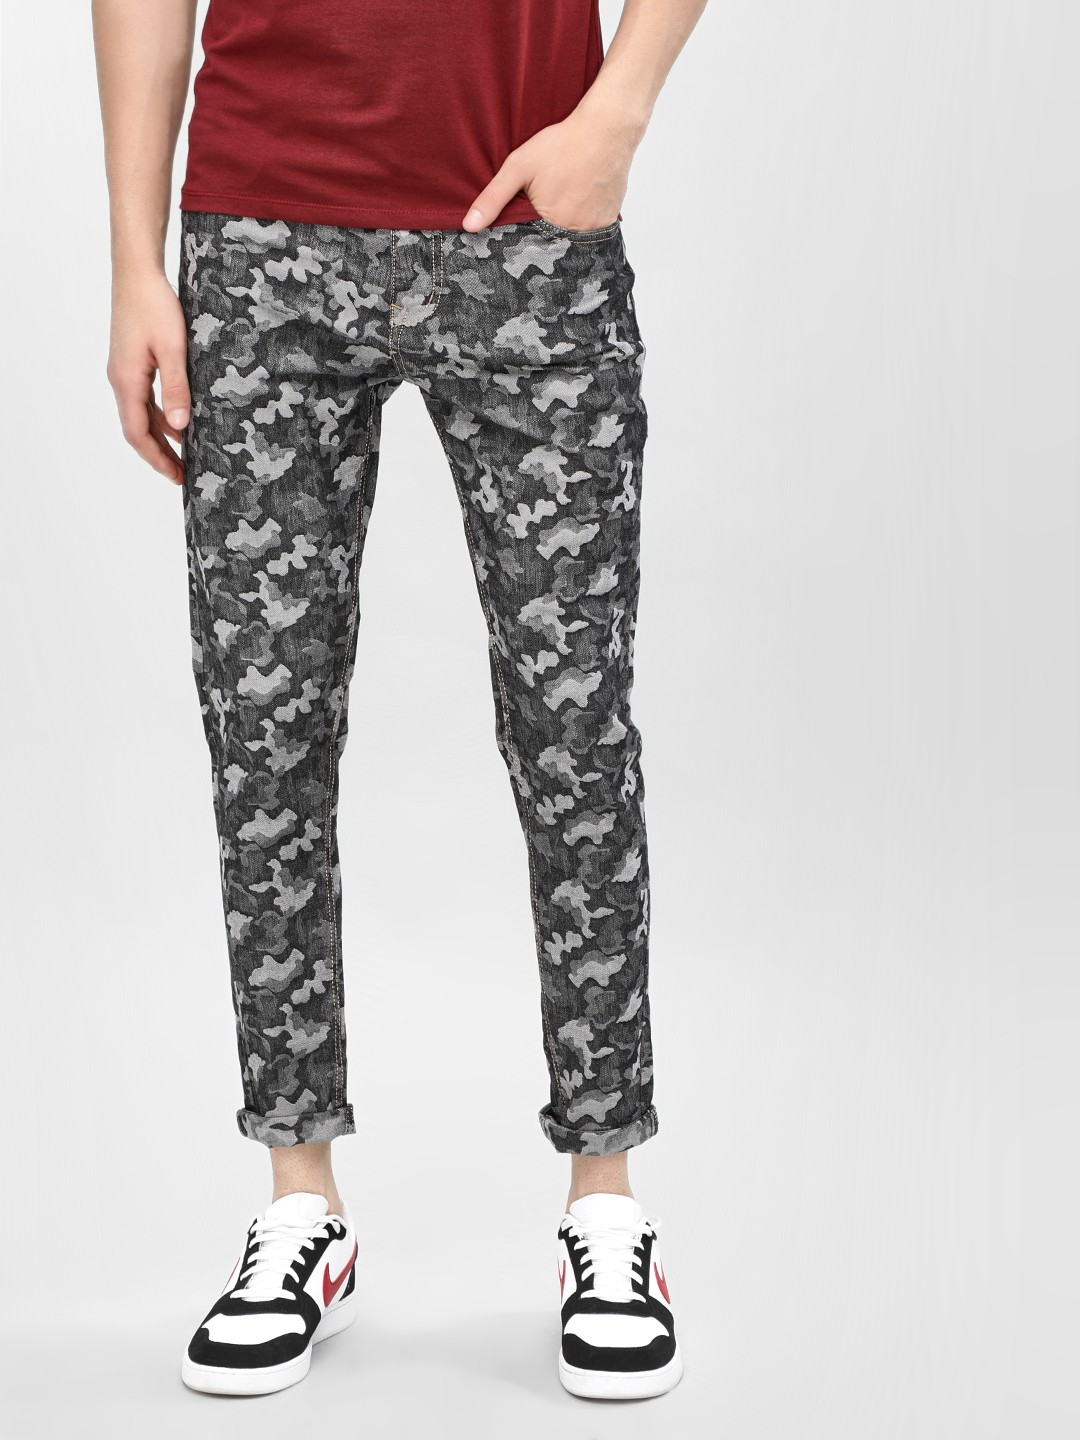 K Denim Multi KOOVS  Camo Printed Slim Jeans 1